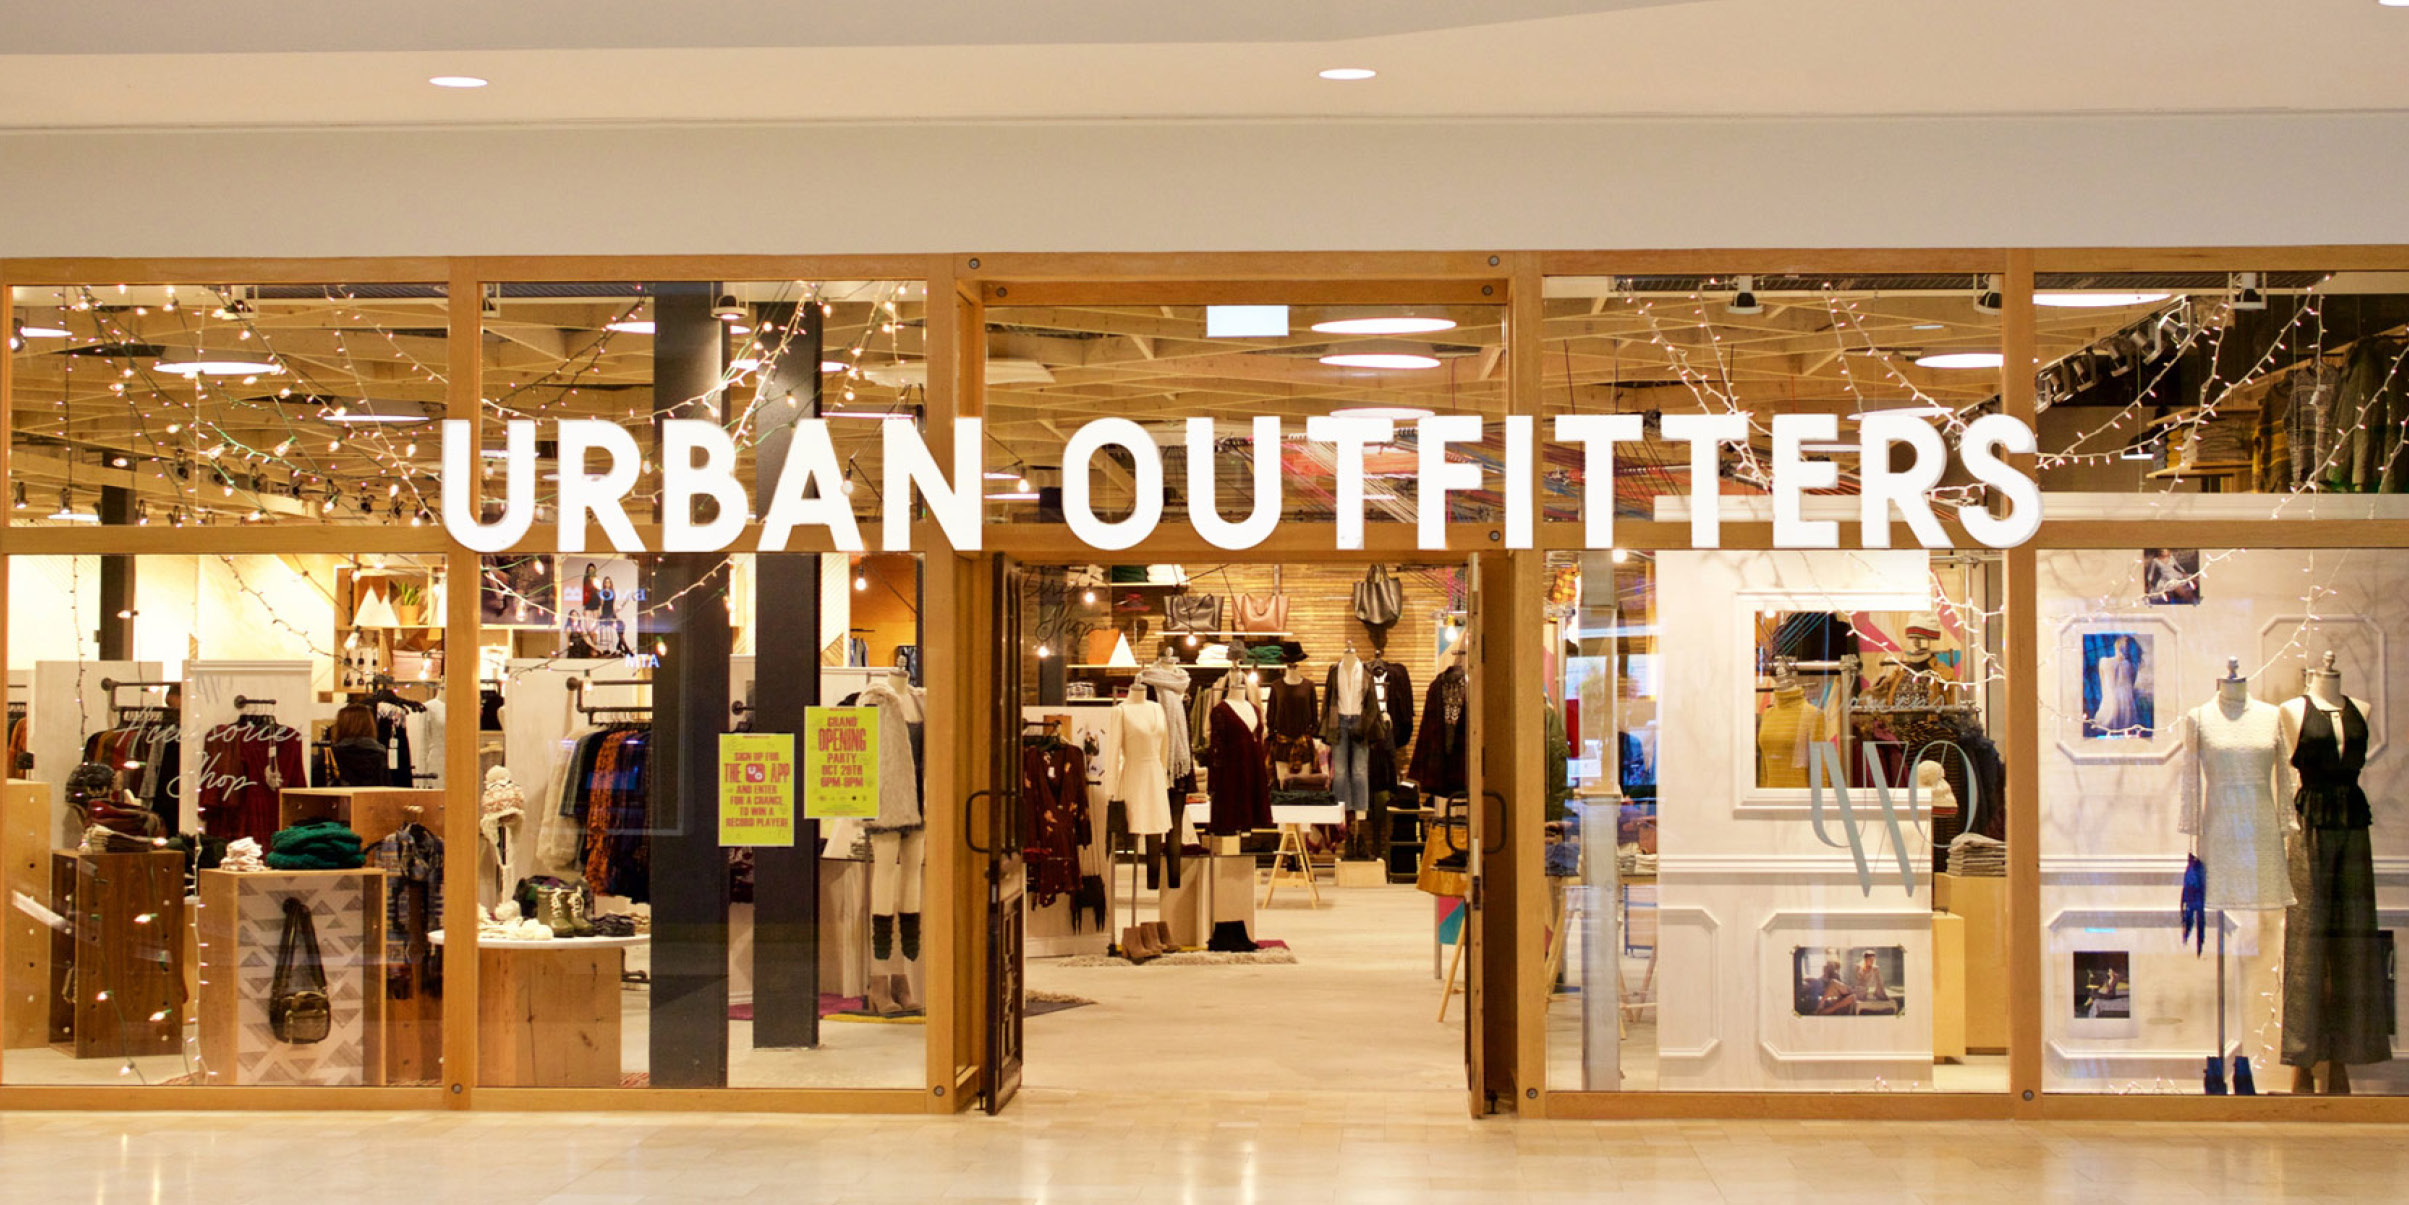 Urban Outfitters owner scraps policy that allegedly led to racial profiling of shoppers